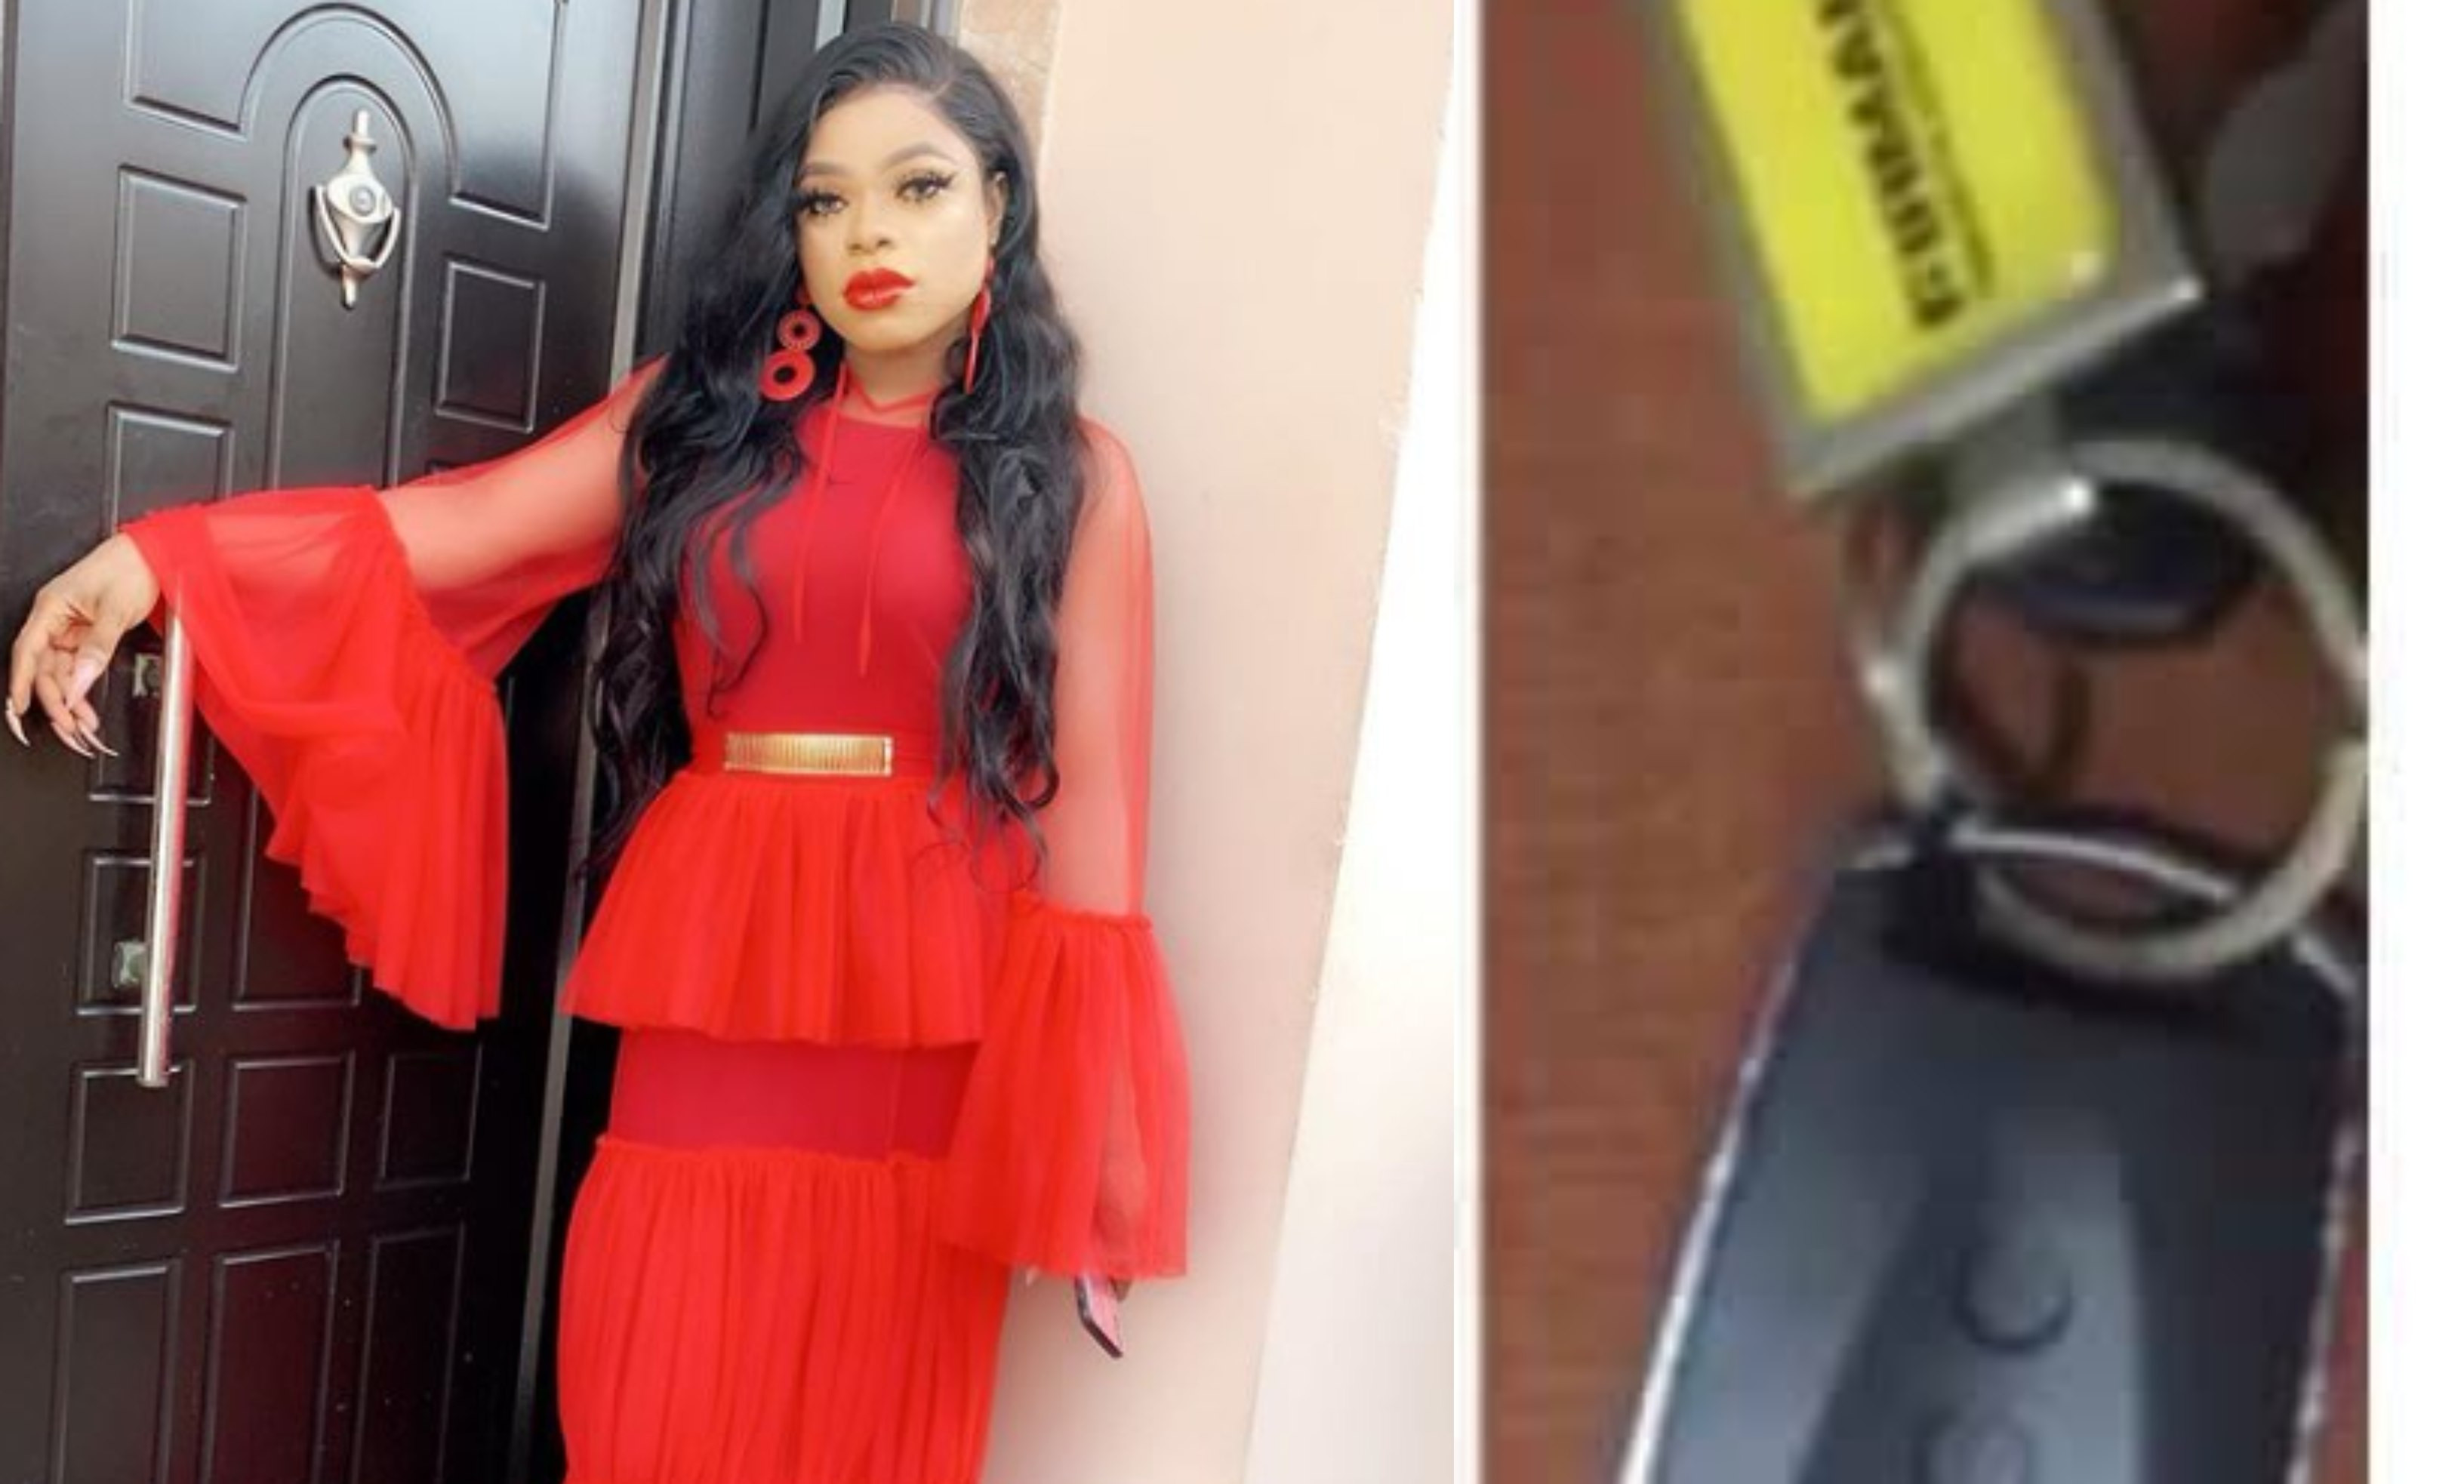 Bobrisky called out by followers for passing off a generator key as his car key (video)